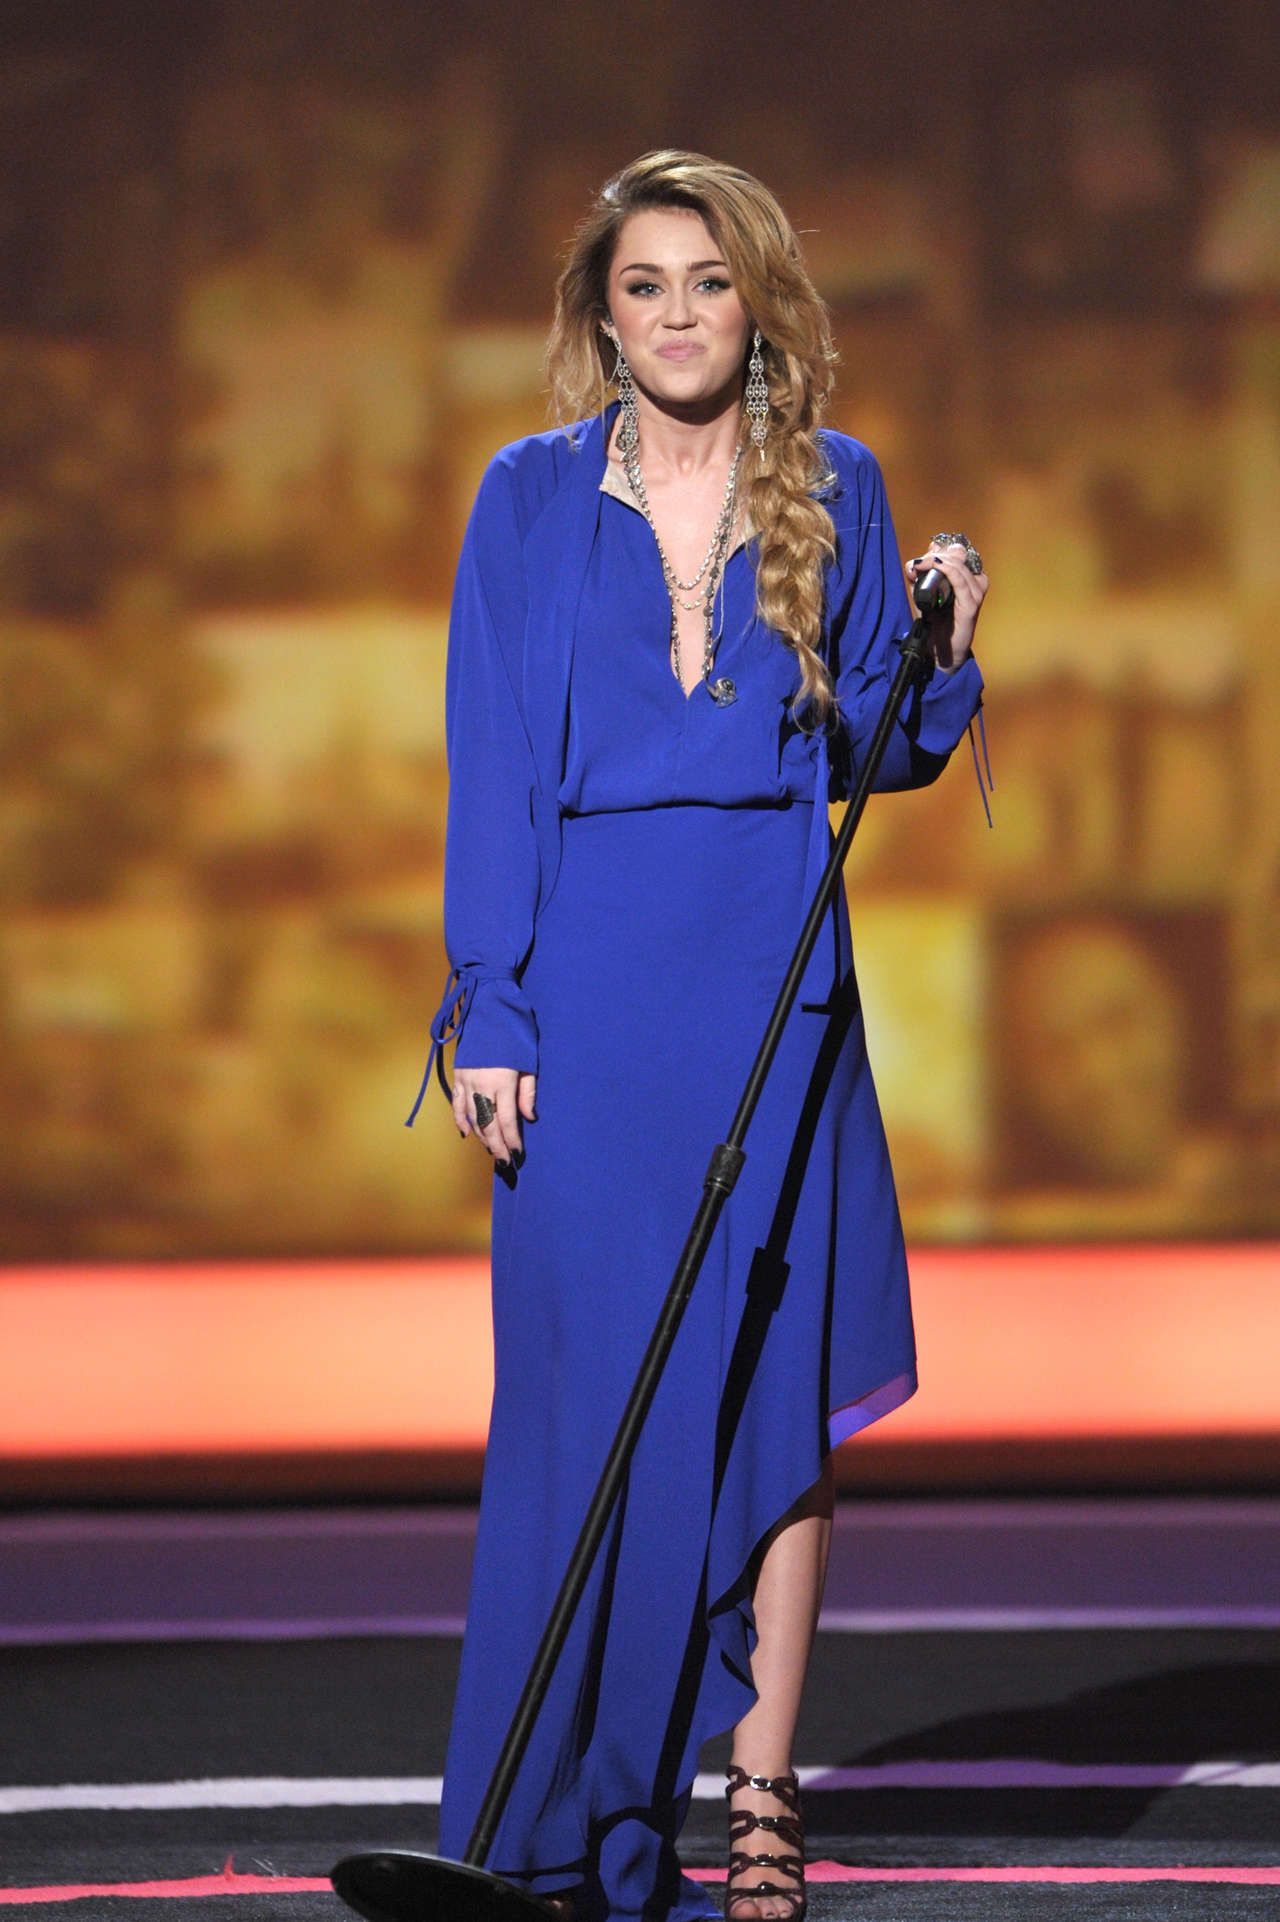 b9b605c1f7a3 Miley Cyrus cobalt blue dress (2011 CNN Heroes  An All-Star Tribute  performance)